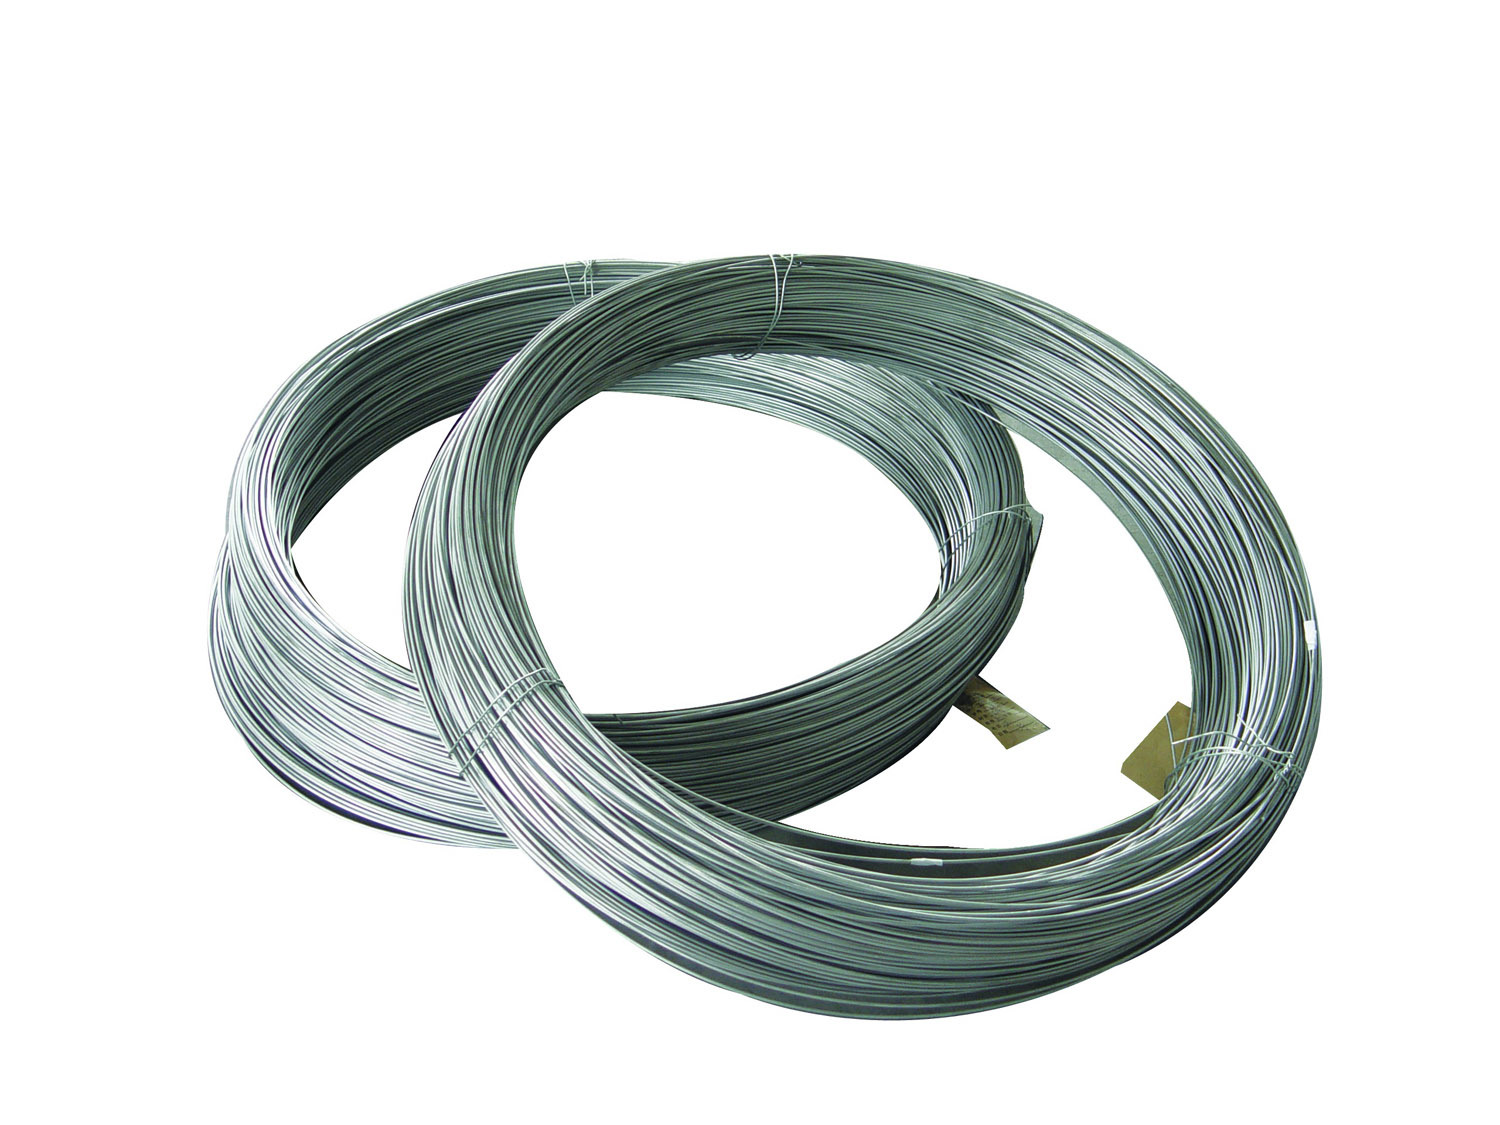 Factory Copper further High Quality Close End Wire Connector 1387738228 additionally Principles Of Cable Manufacturing Followed By Electric Cable Manufacturers further Odessa Texas Valve Buyers in addition See Electrical Plm. on kinds of electrical wire